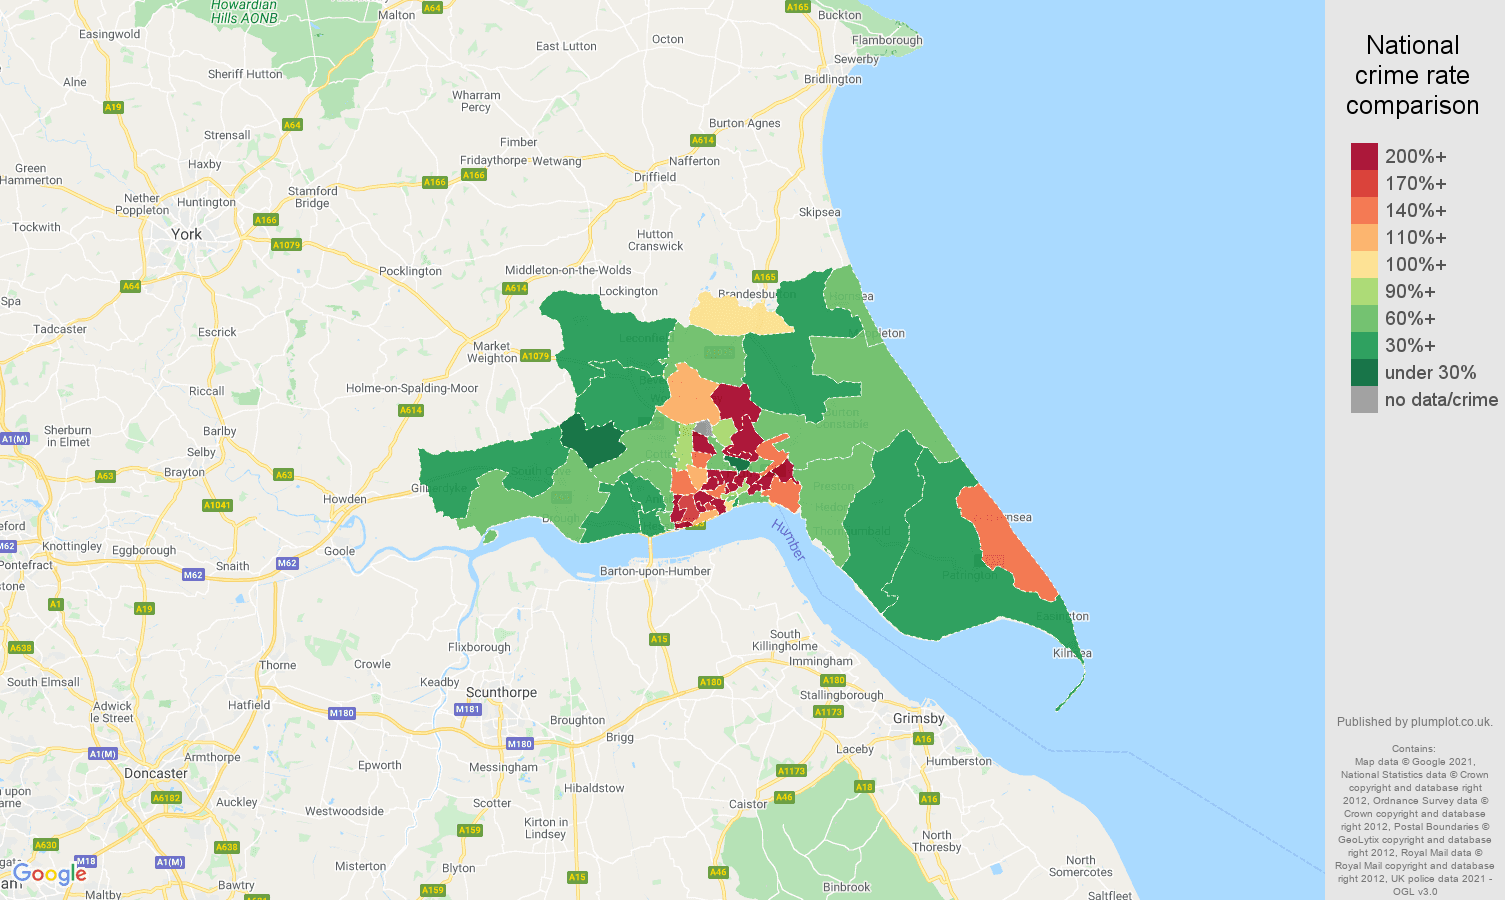 Hull criminal damage and arson crime rate comparison map